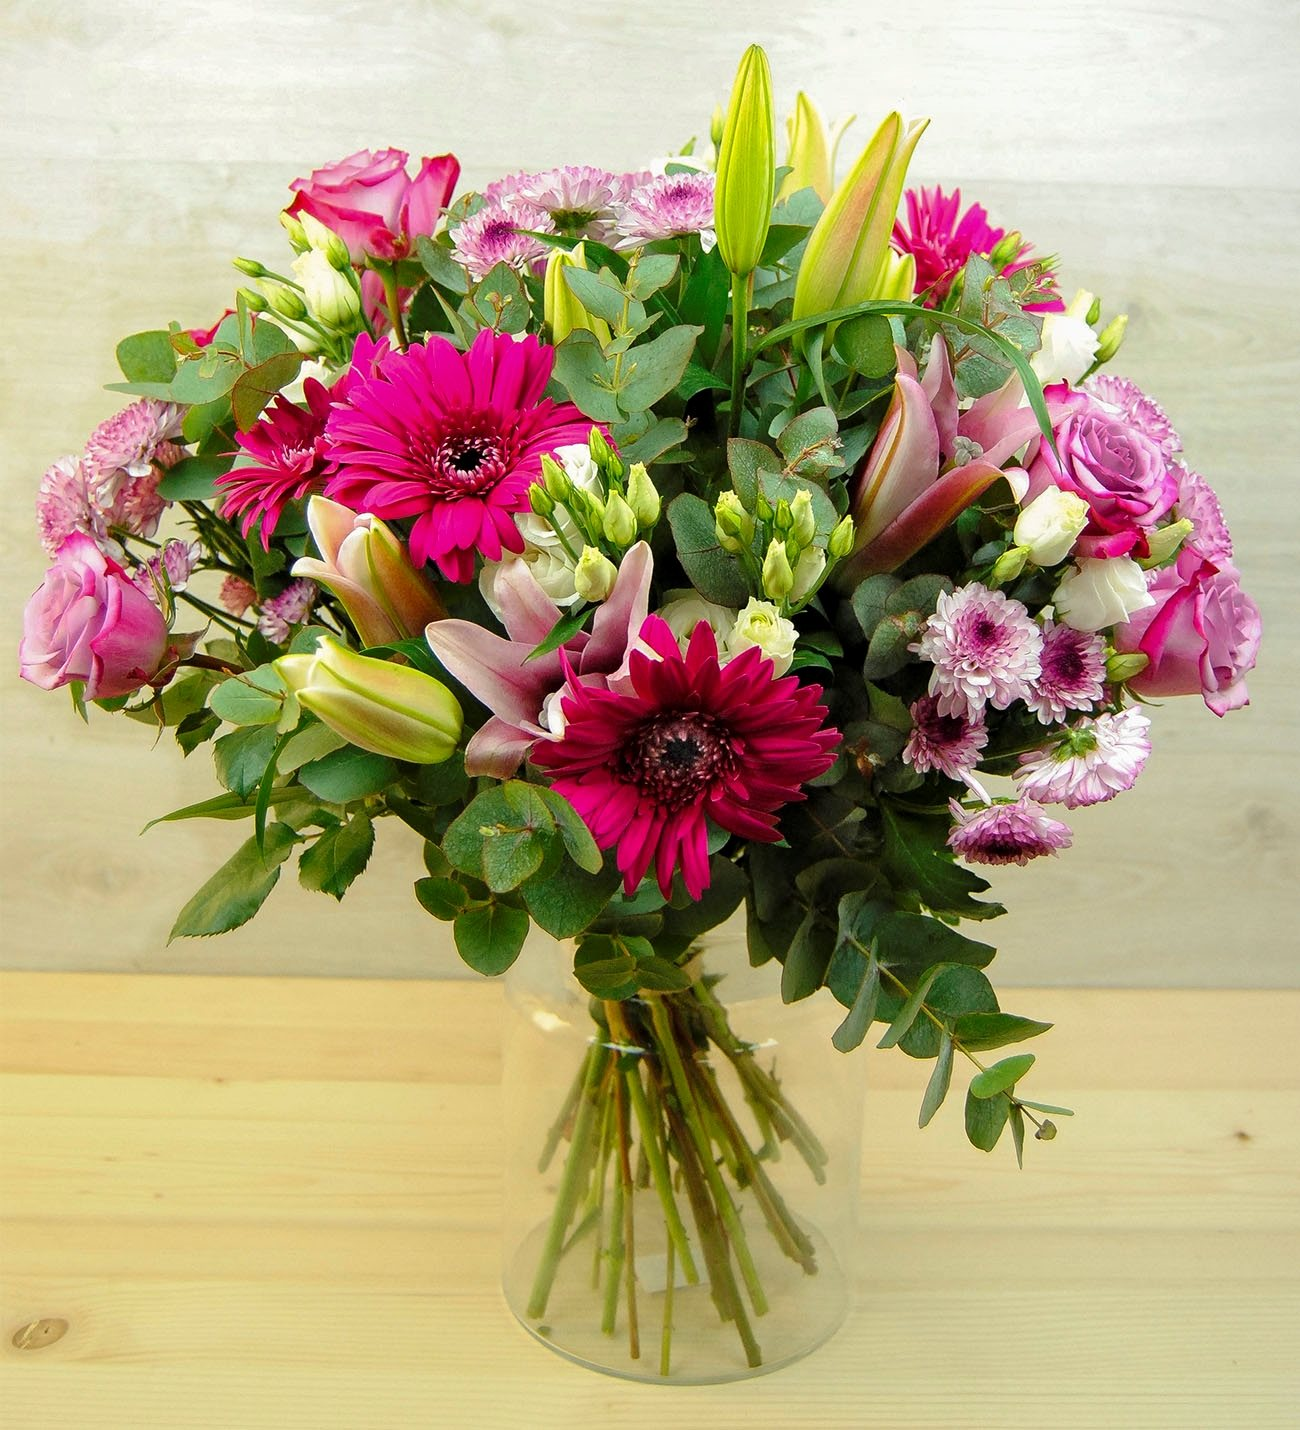 Sorez - Colourful Mixed Flower Bouquet - LolaFlora